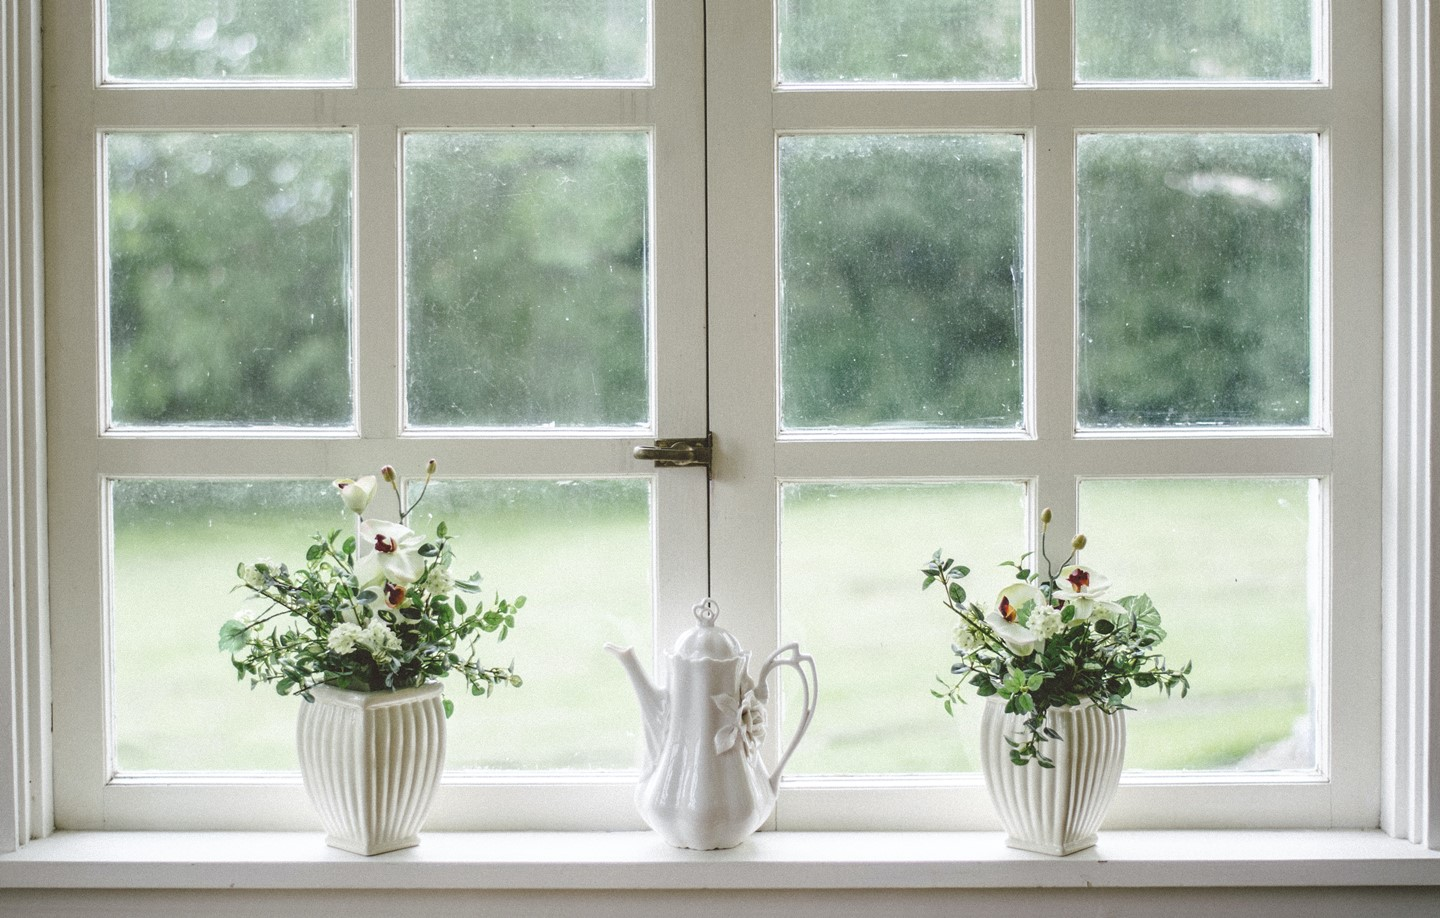 a window with 2 plants and a teapot